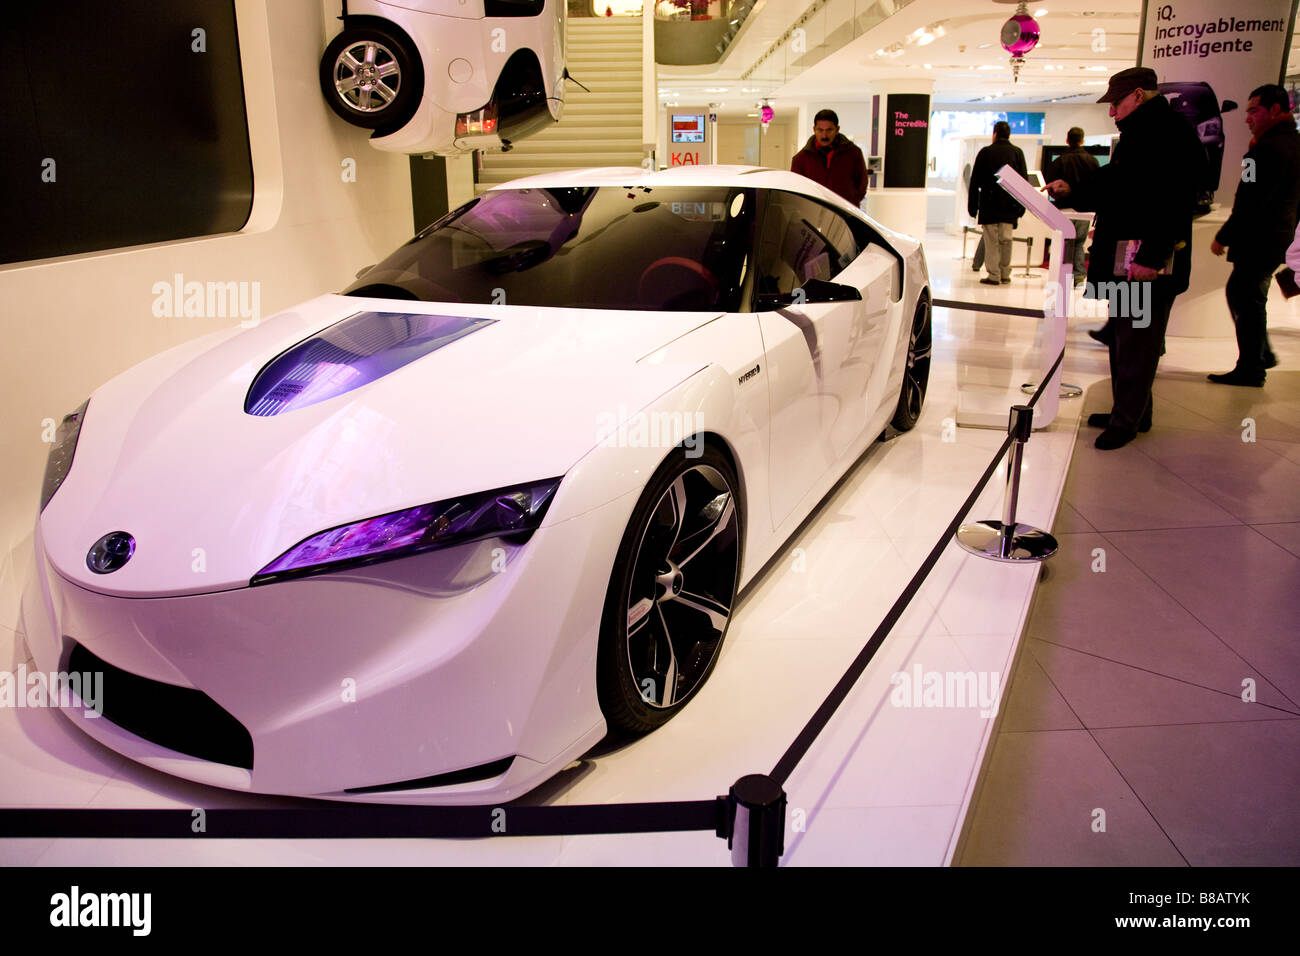 Onlookers Admire A Concept Car In A Showroom In Paris   Stock Image